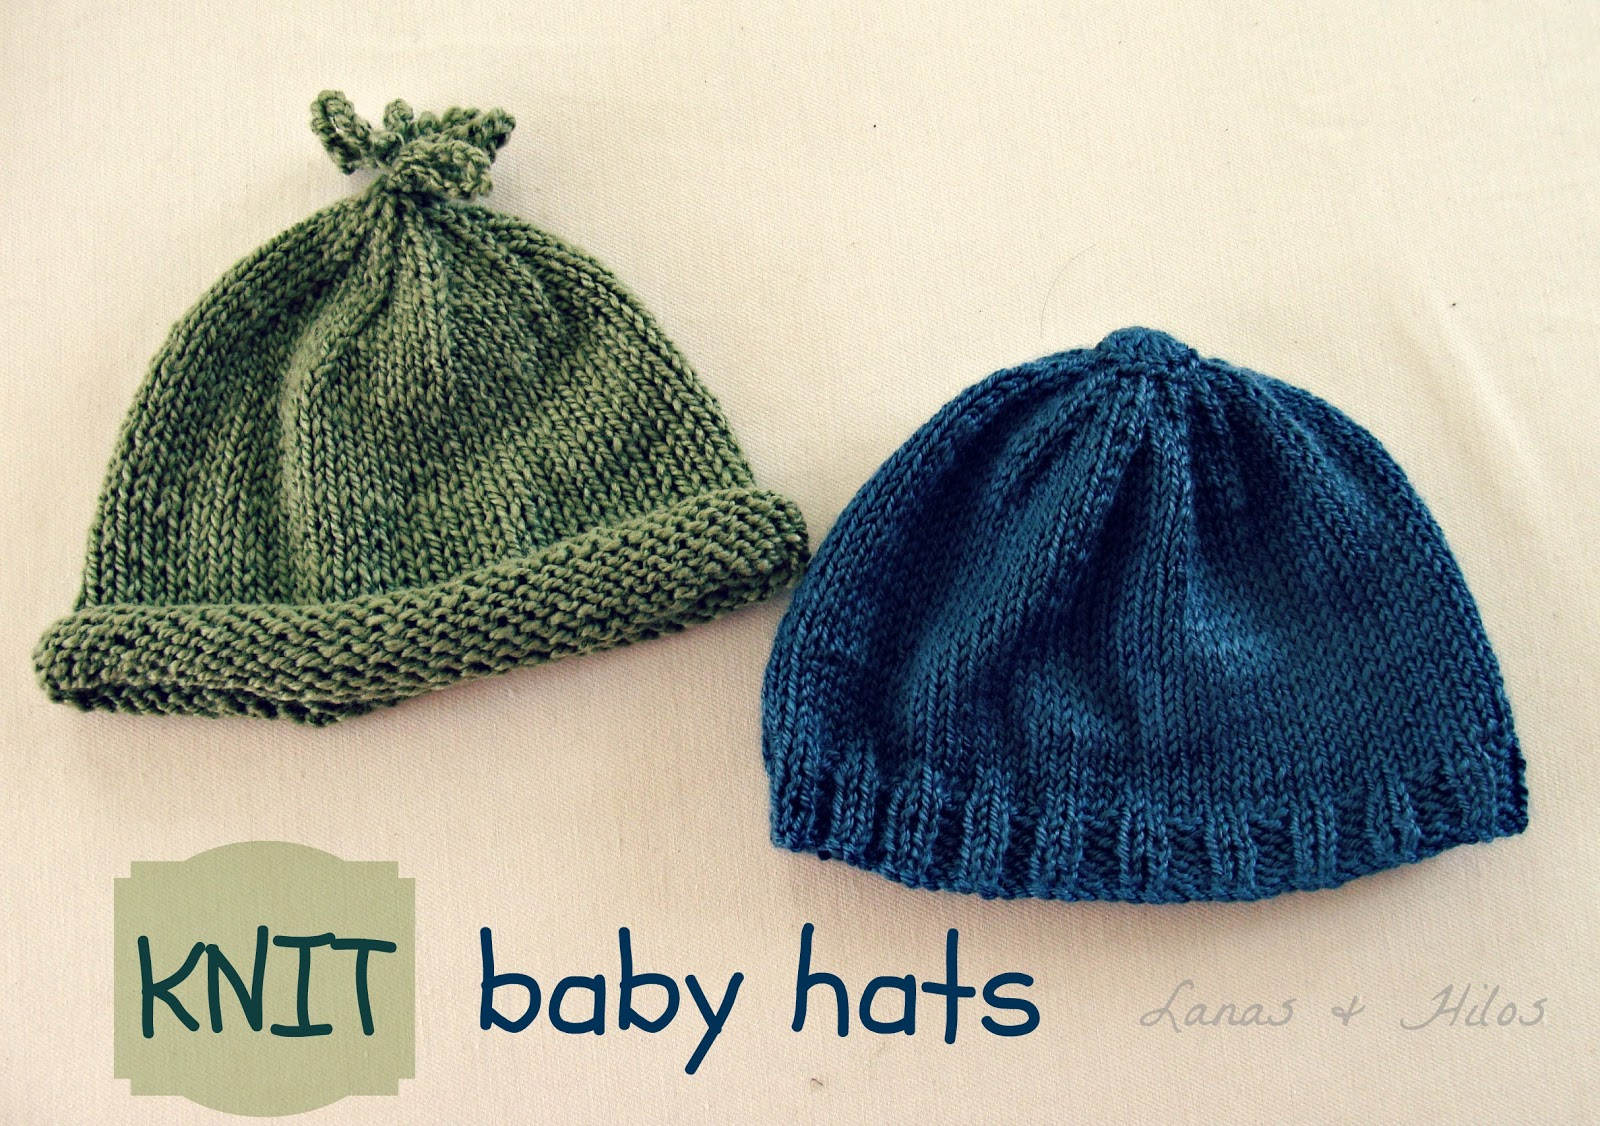 These two babyhats were knitted with a light yarn (Dora, Madame